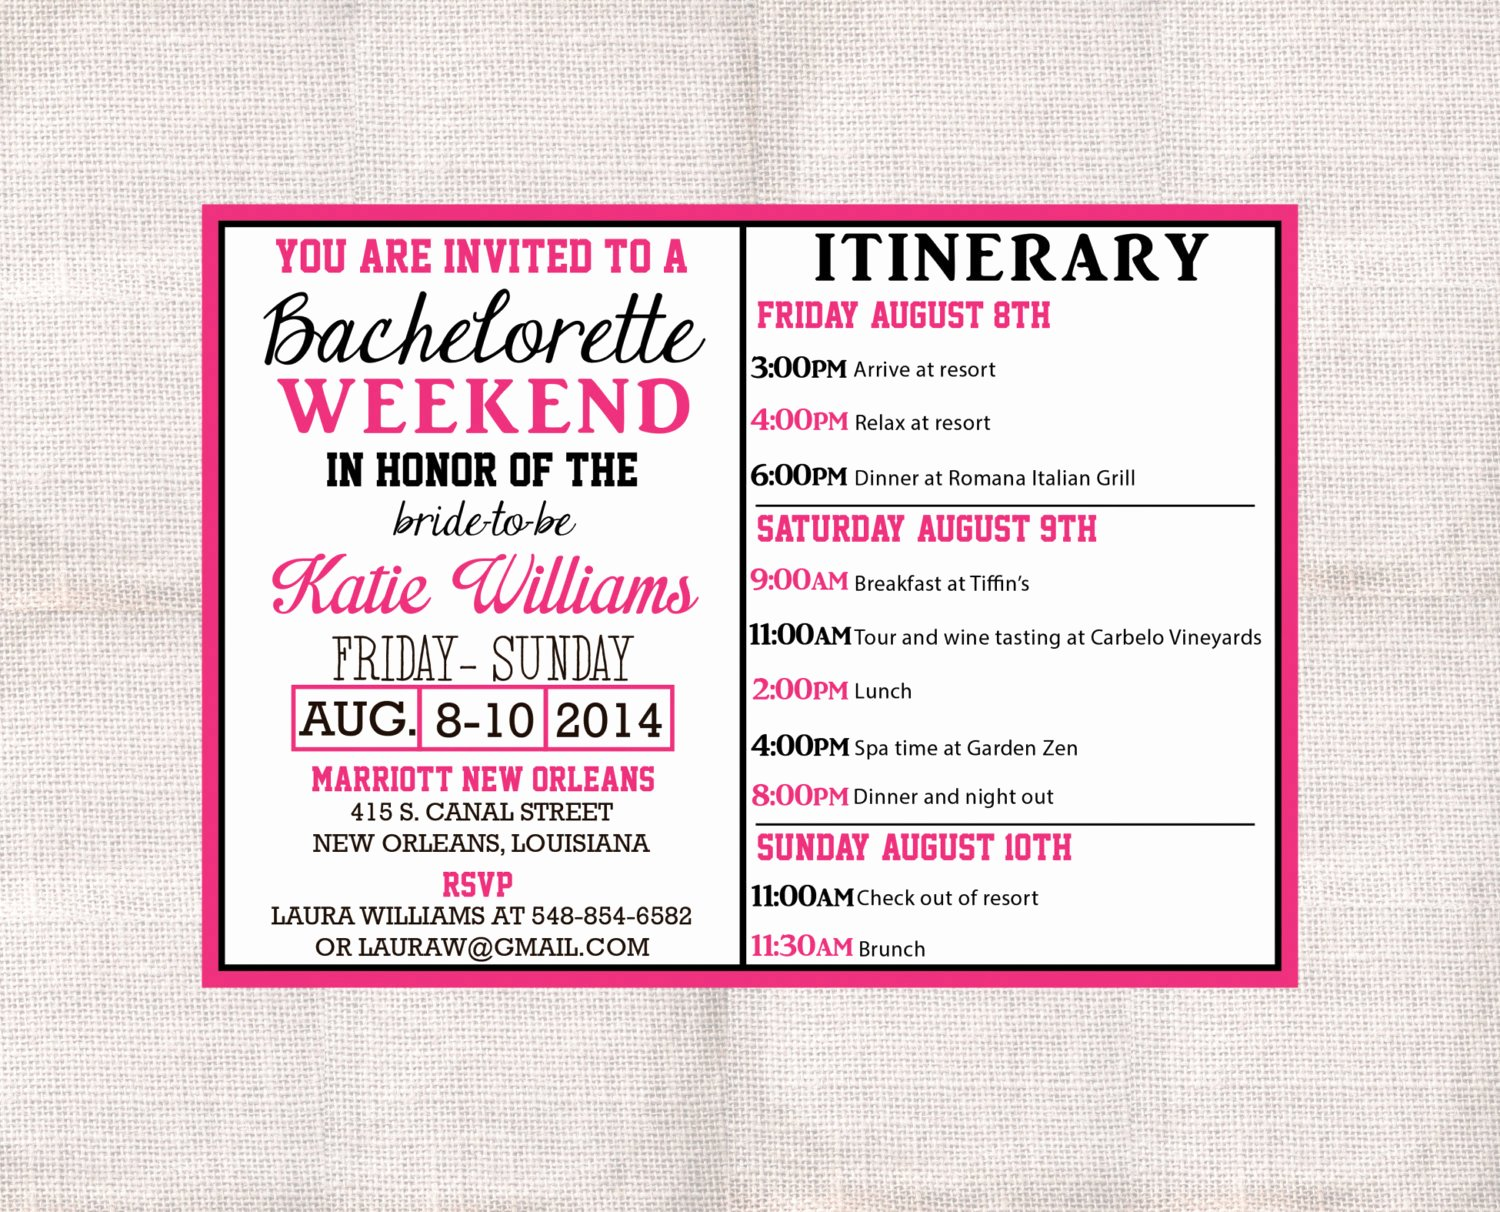 Bachelorette Party Itinerary Template Beautiful Bachelorette Party Weekend Invitation and Itinerary Custom